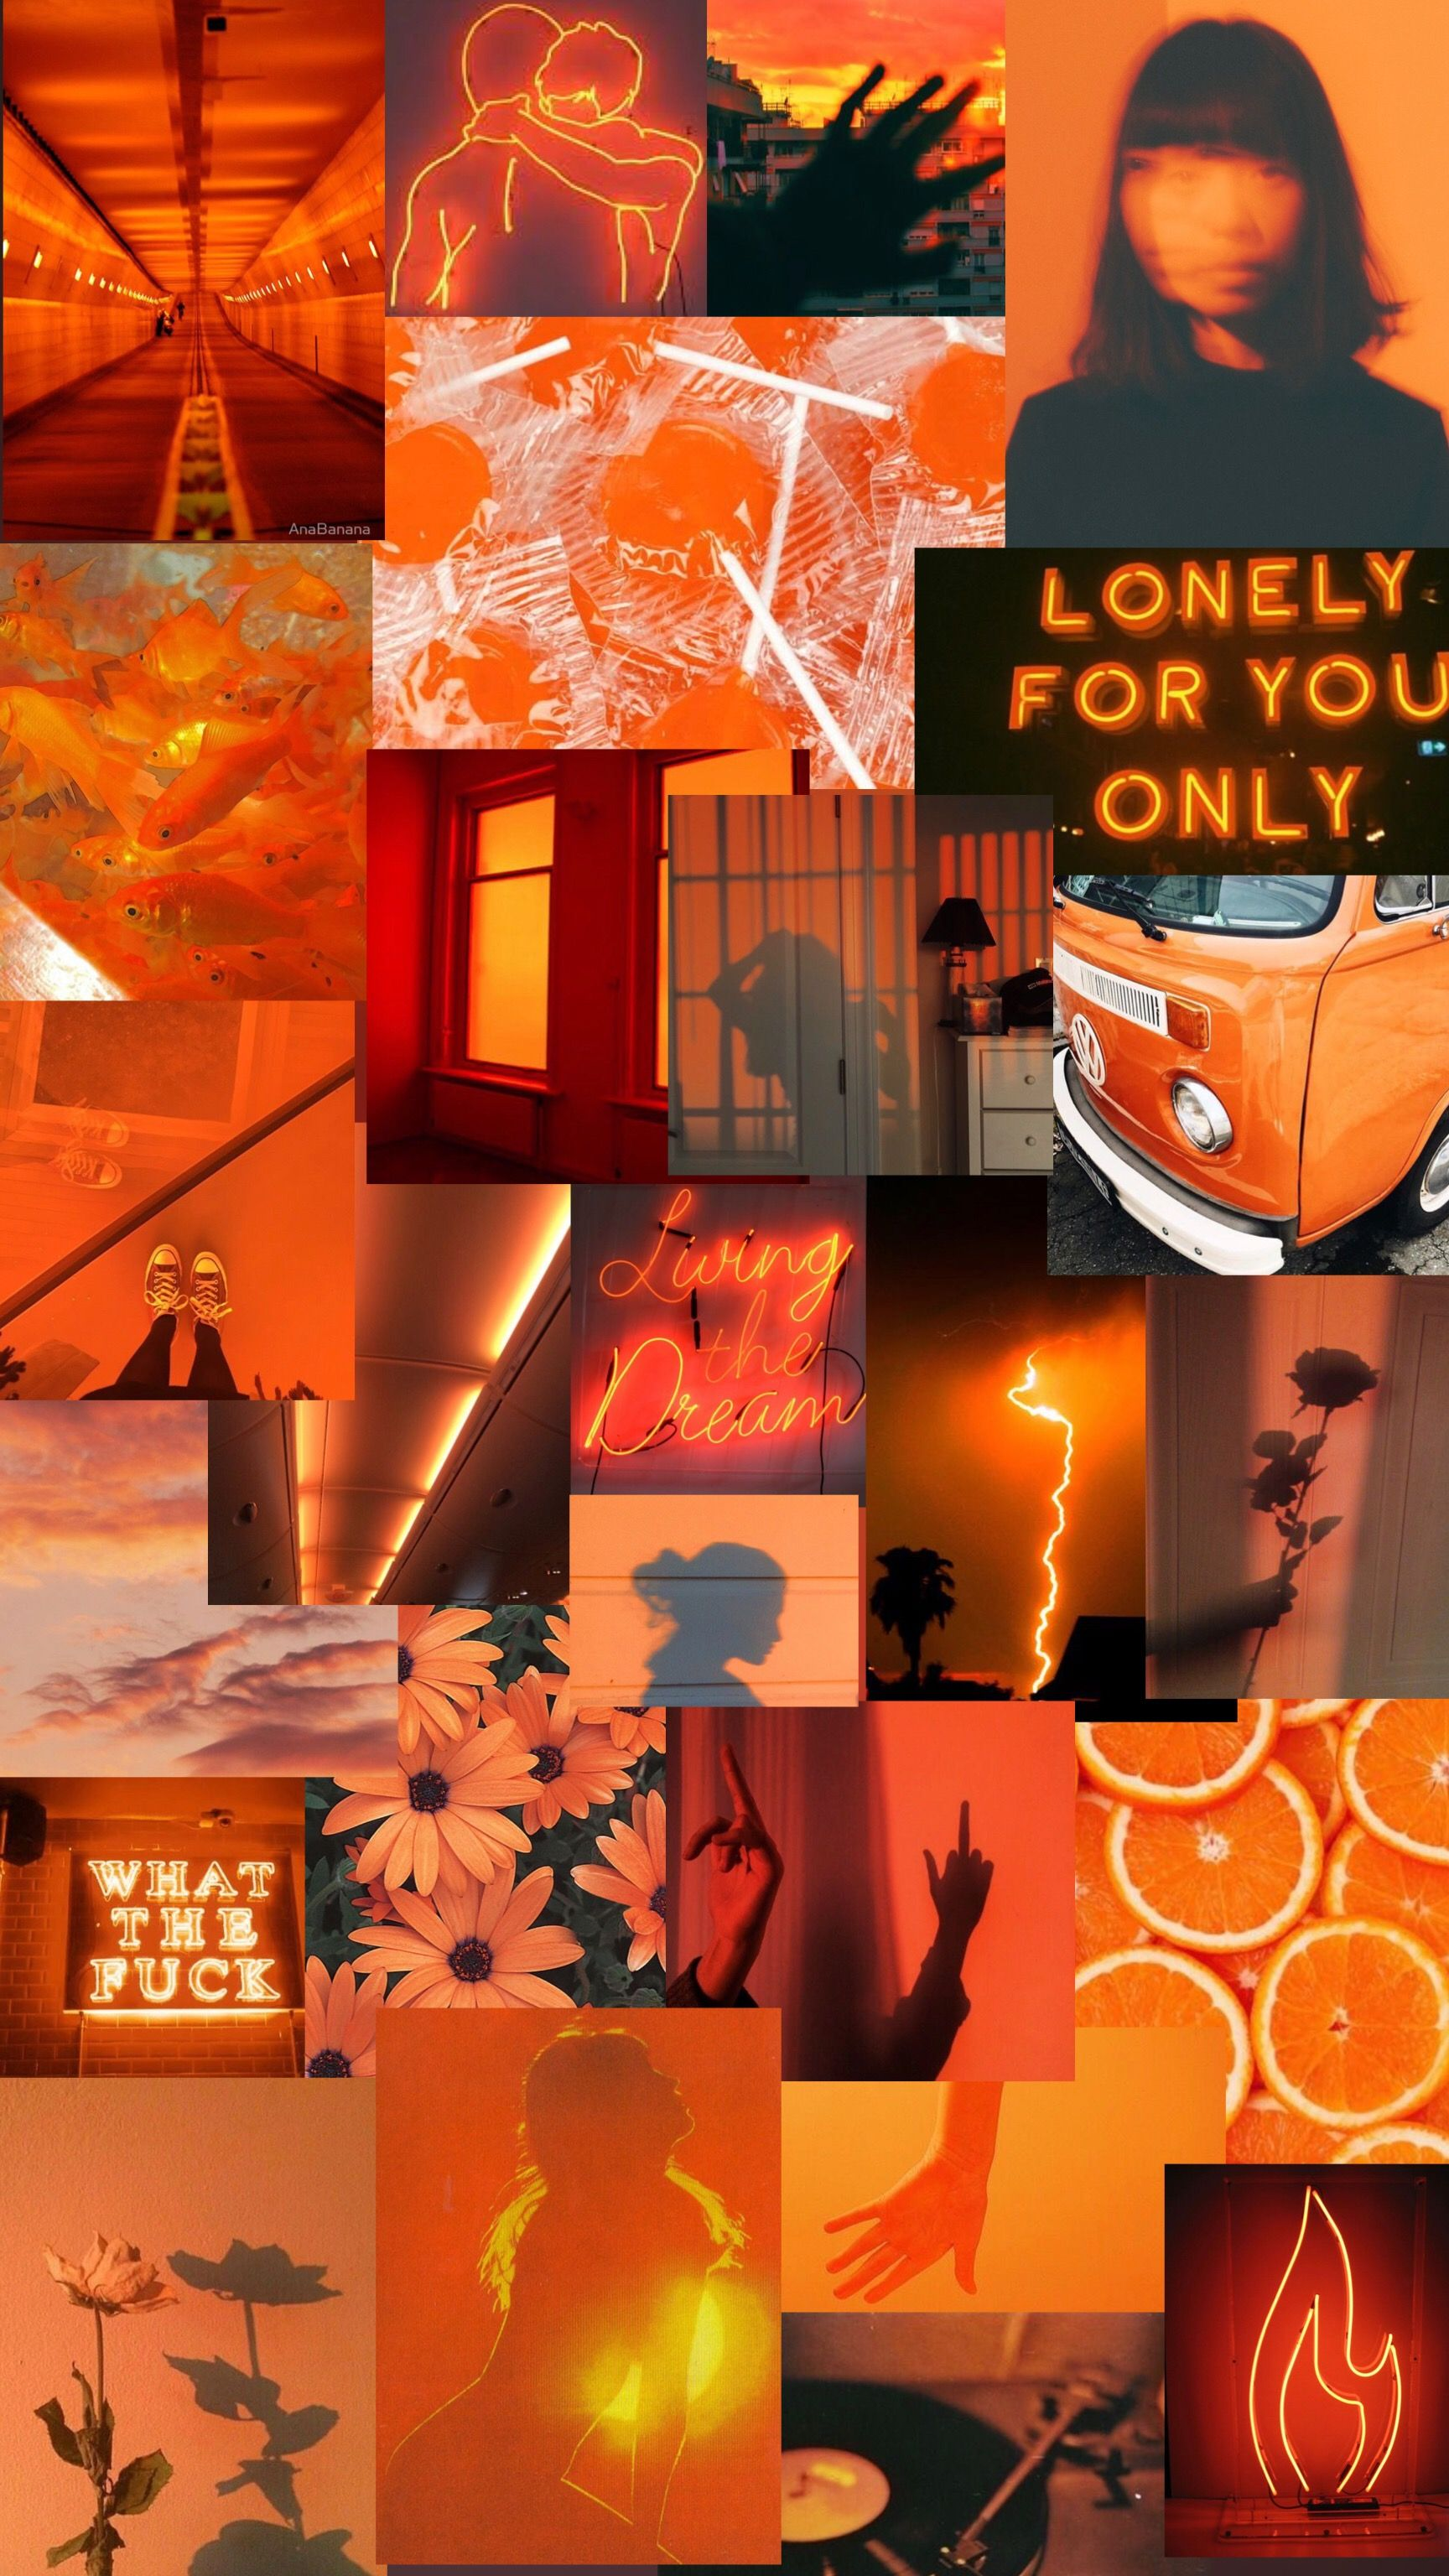 Pin By рыжий кот On Collage Wallpaper Iphone Wallpaper Orange Orange Wallpaper Colourful Wallpaper Iphone